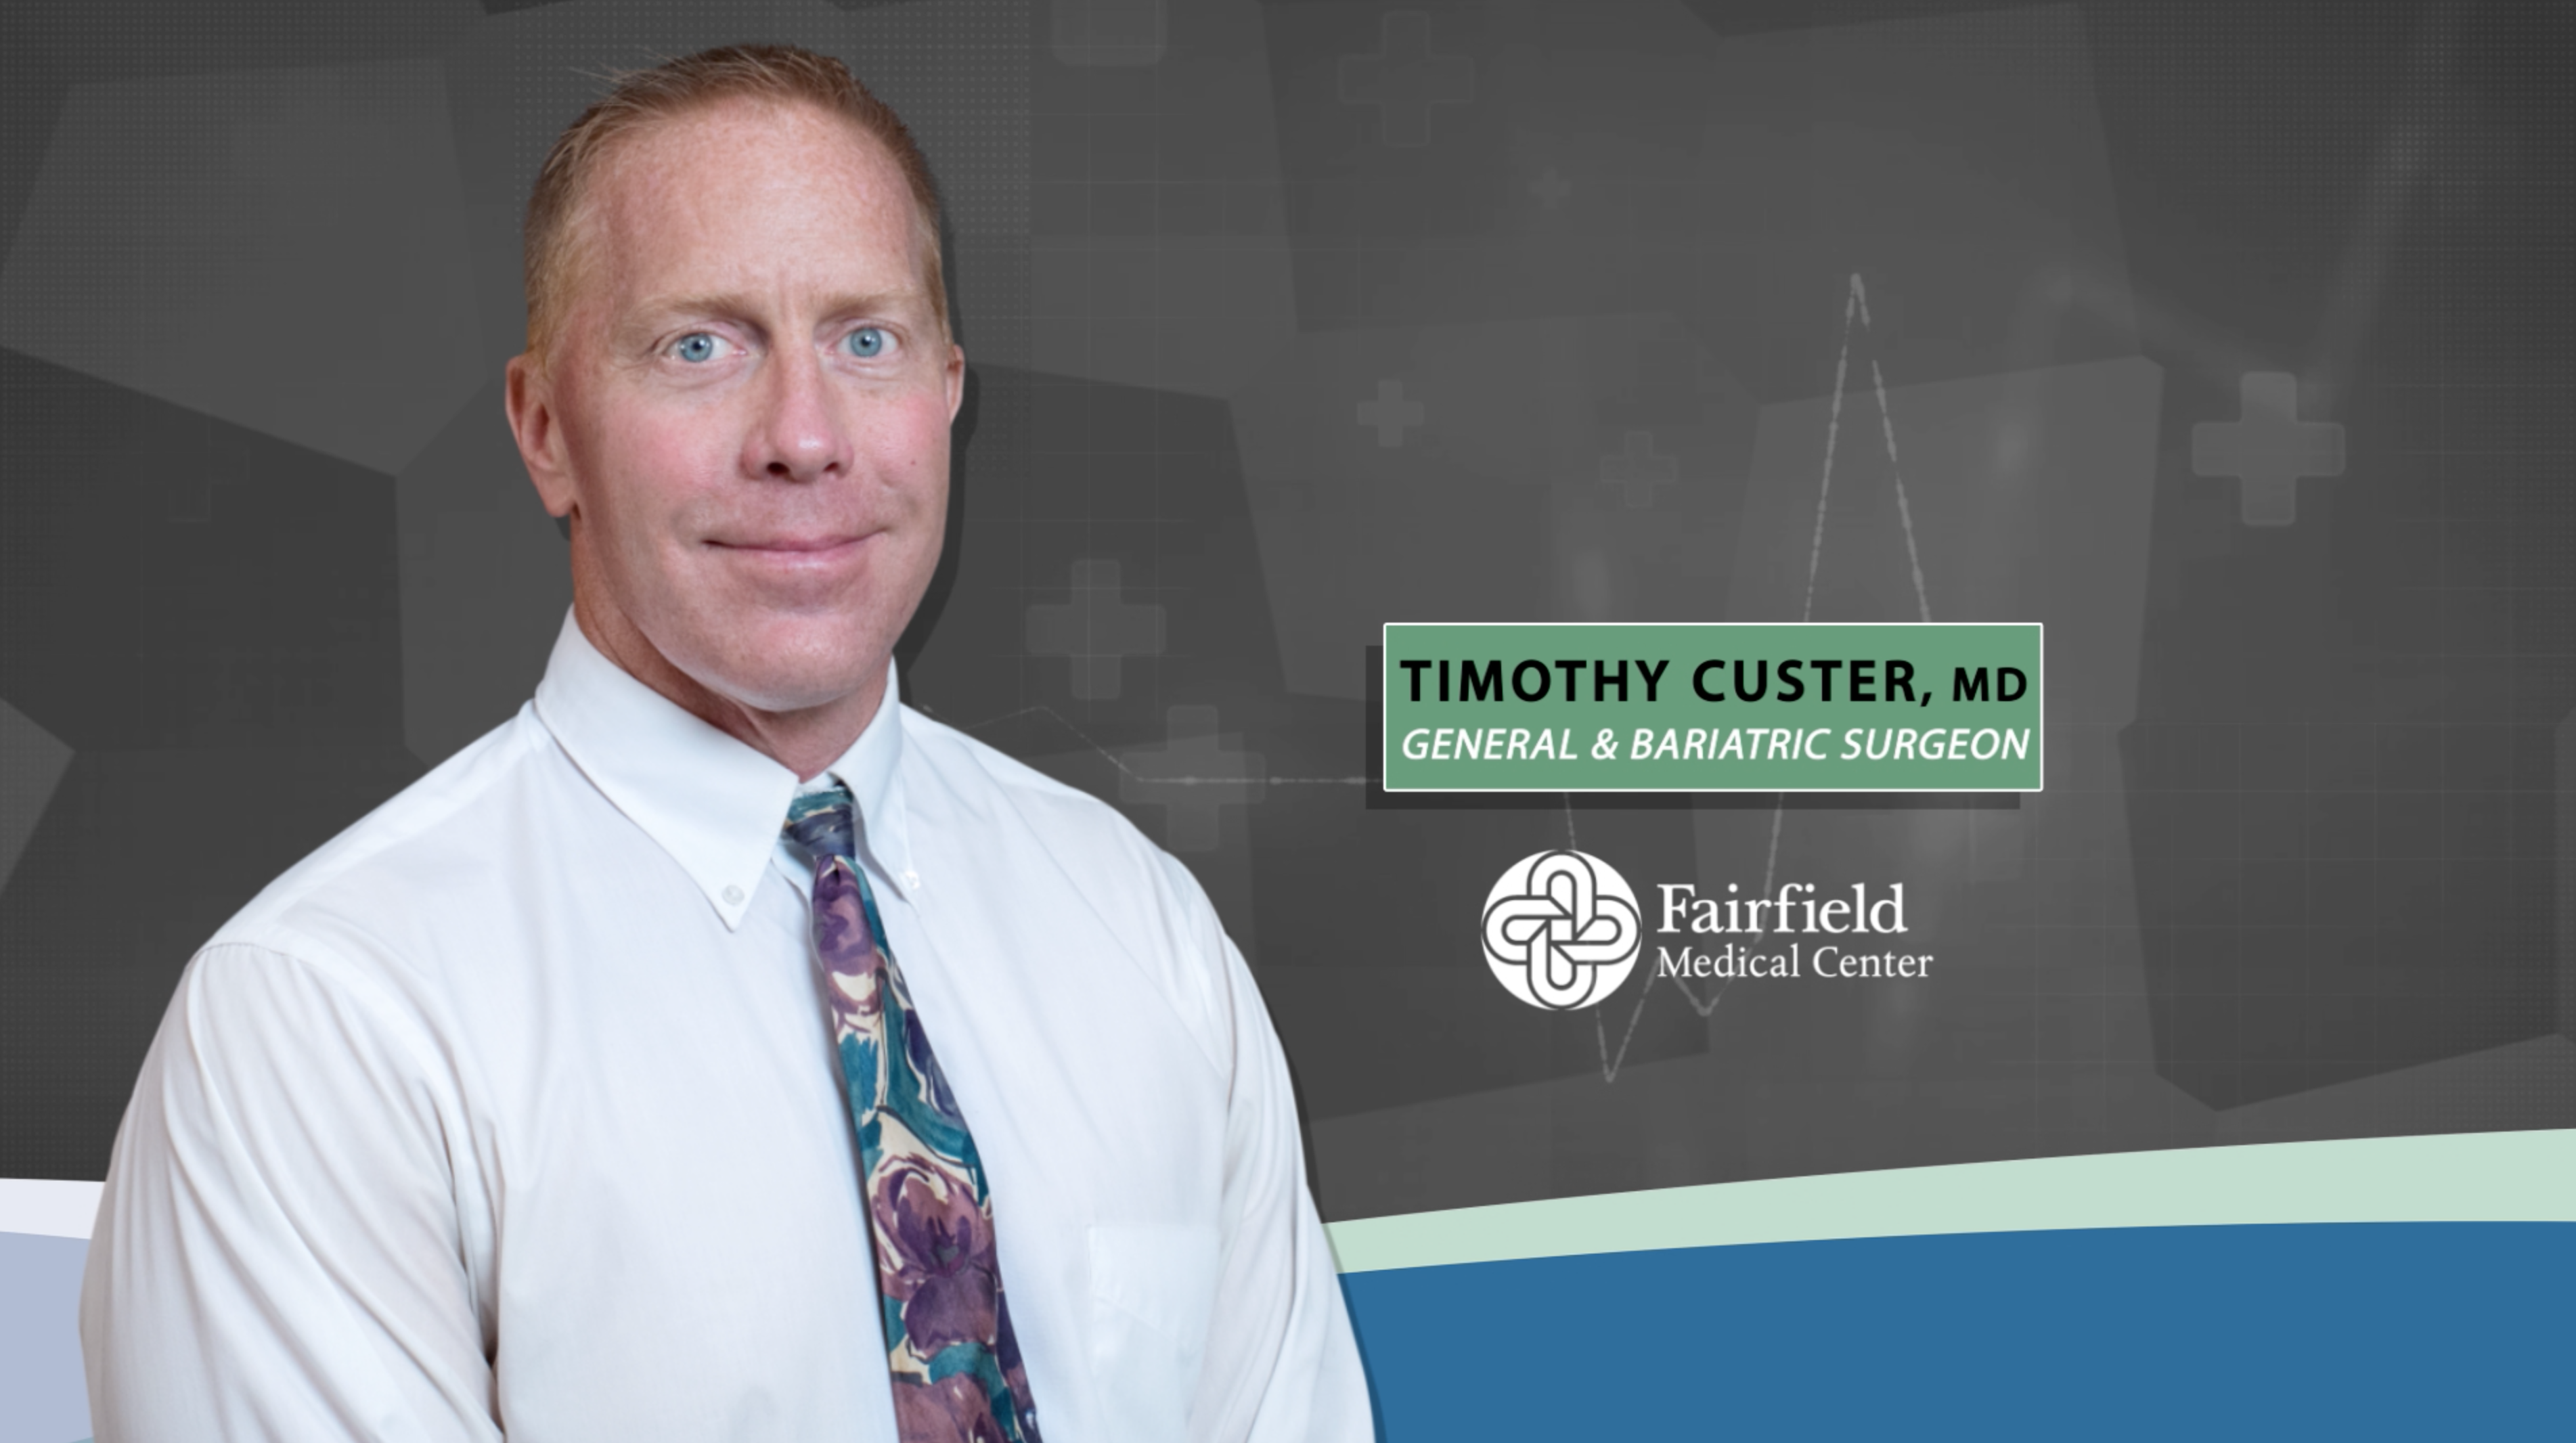 Timothy Custer, MD stands against grey background